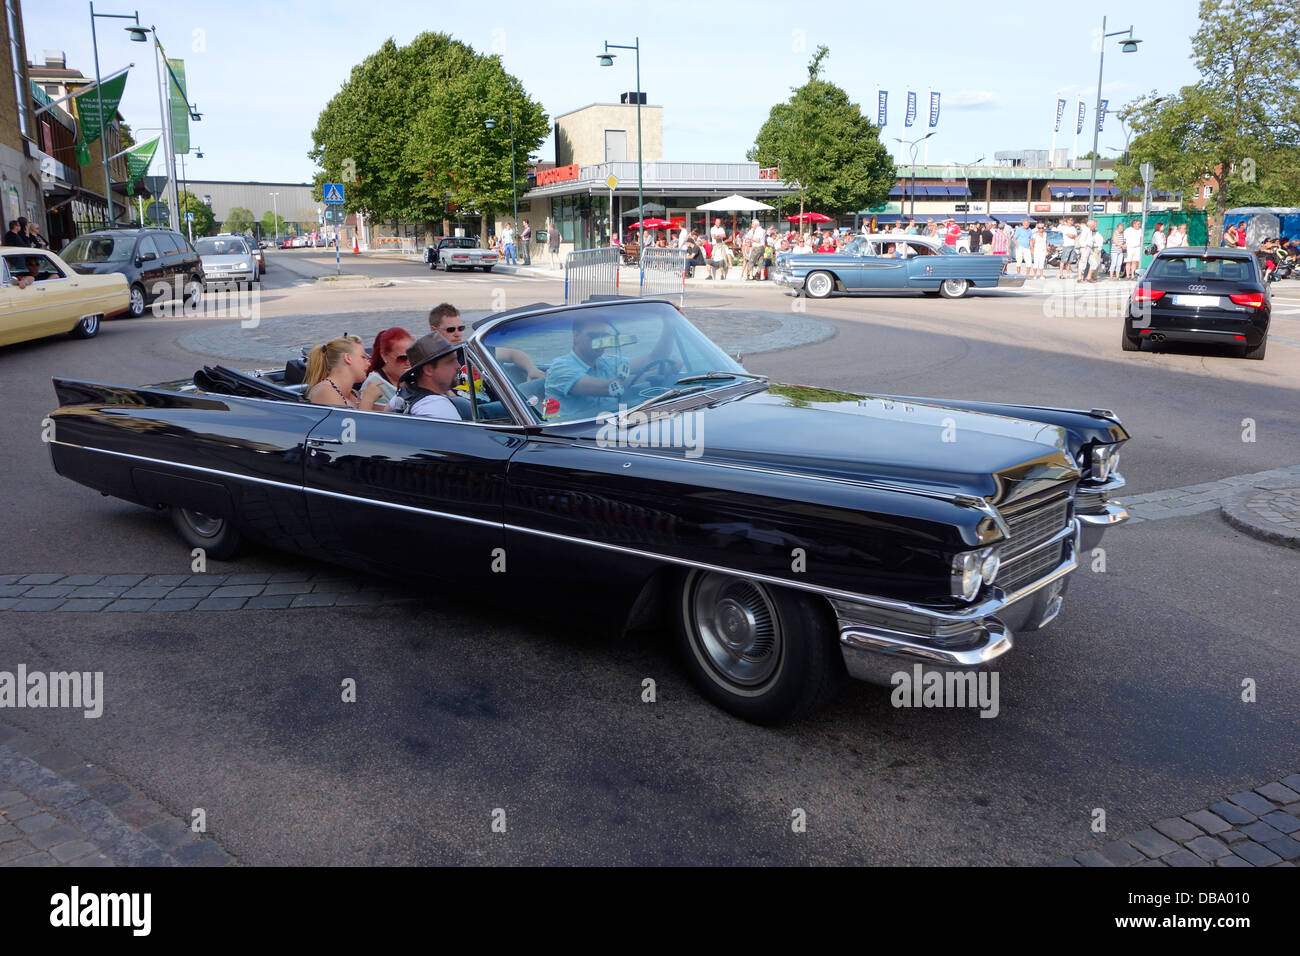 Rockabilly style people riding in a classic car on the road in Varberg town, Sweden - Stock Image